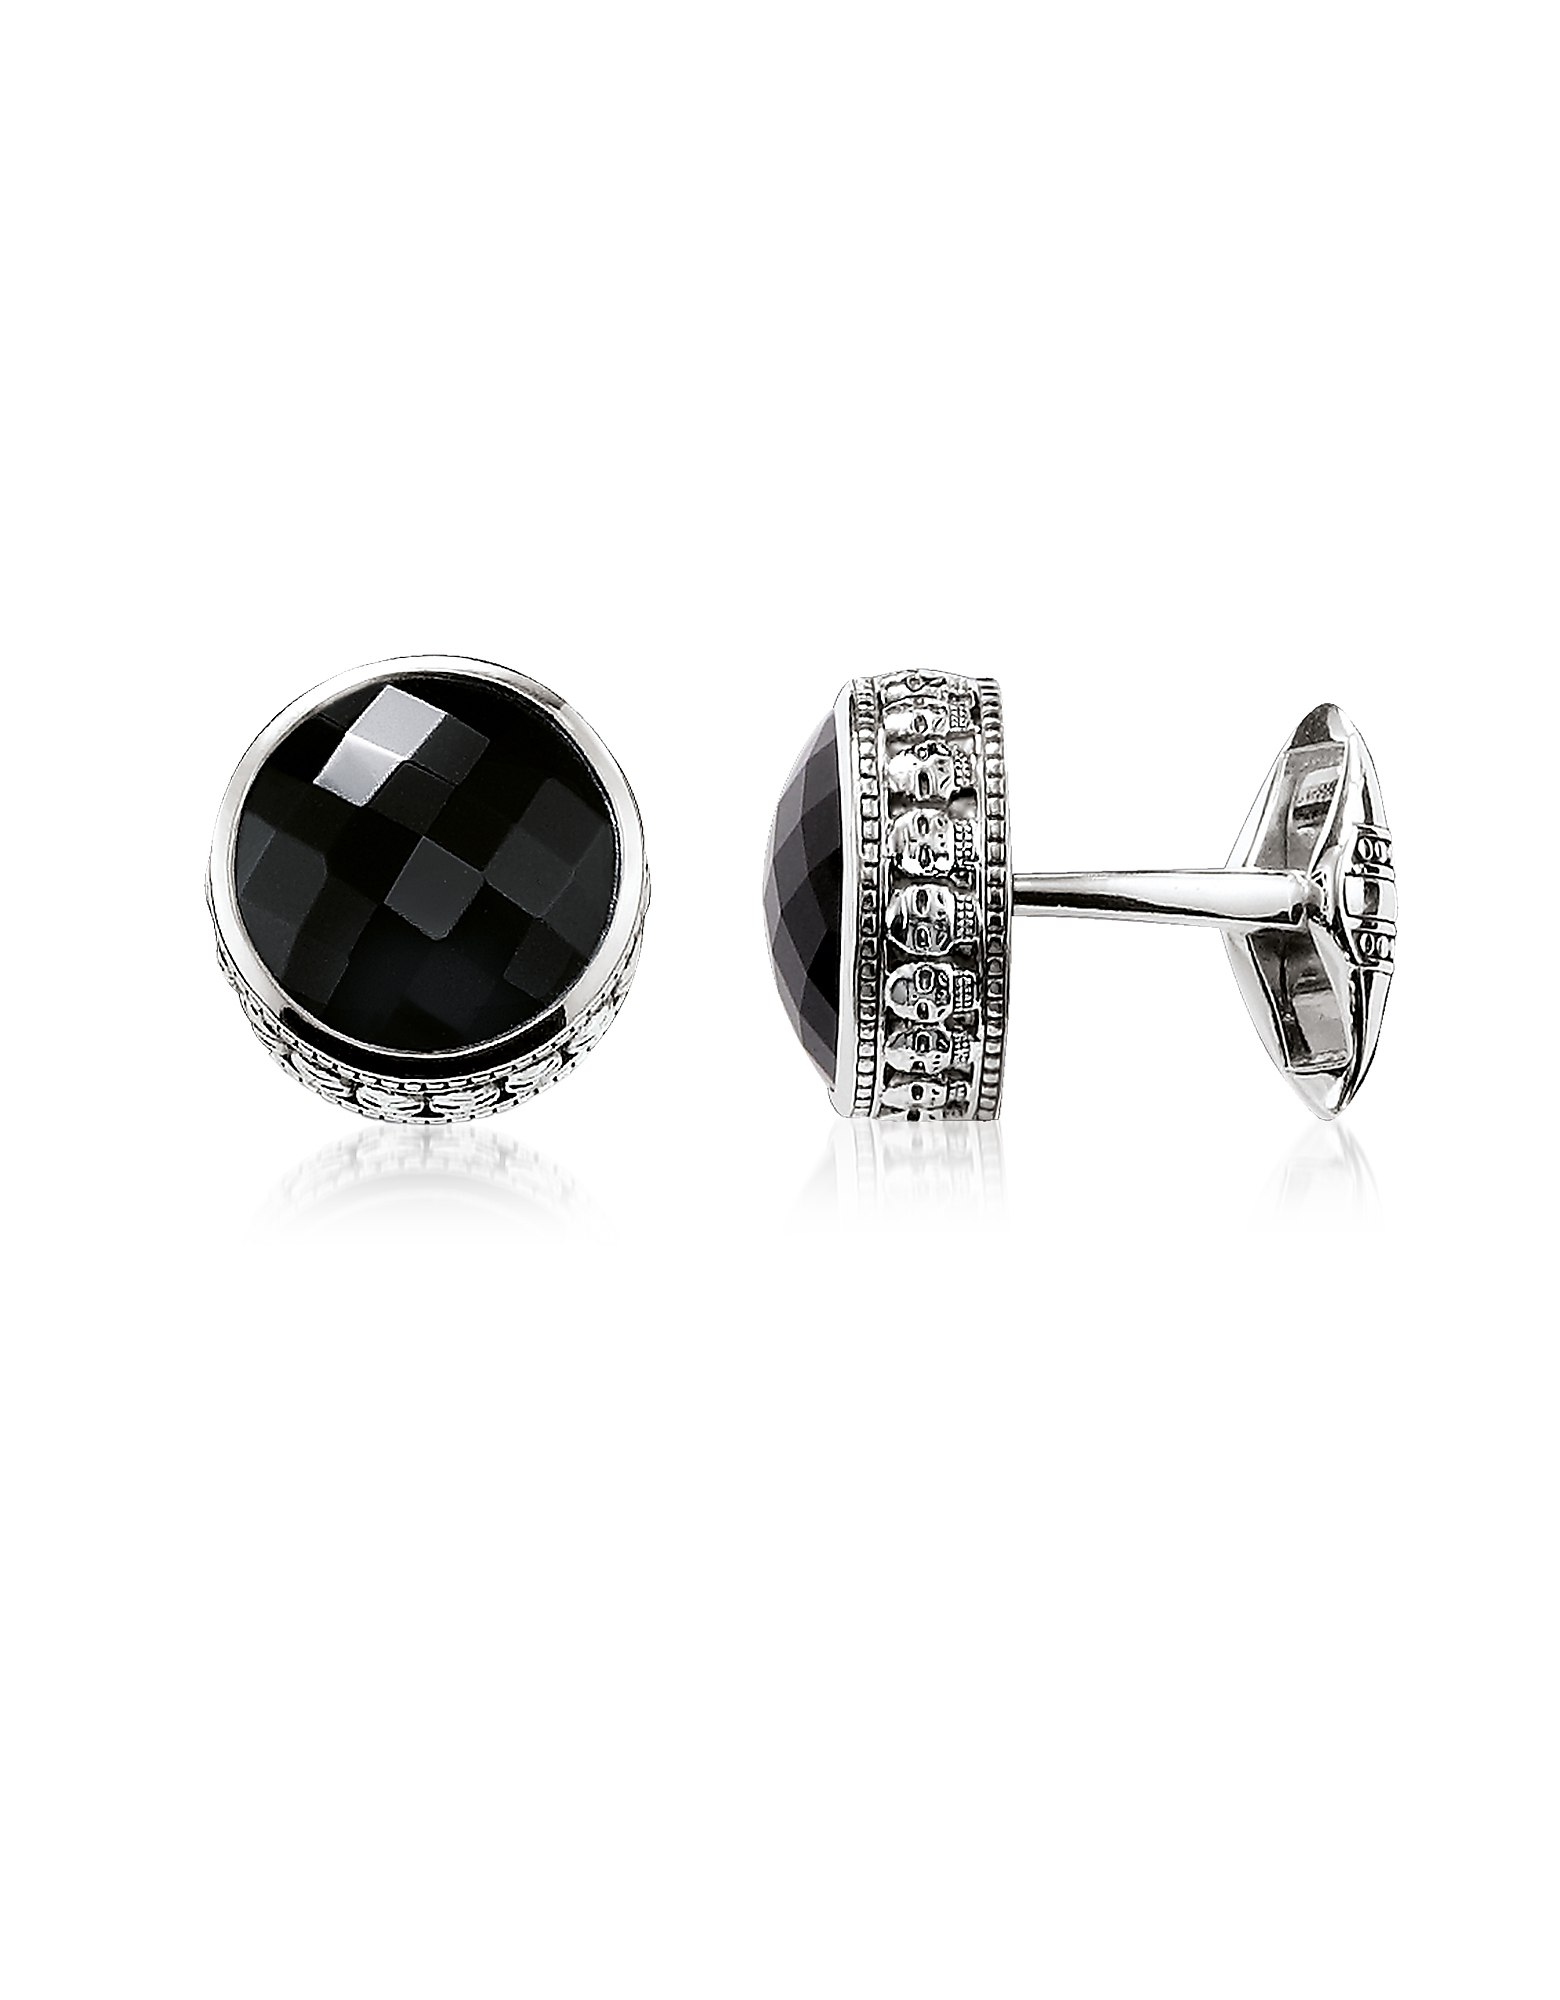 Thomas Sabo Cufflinks, Blackened 925 Sterling silver Skull Cufflinks w/Onyx